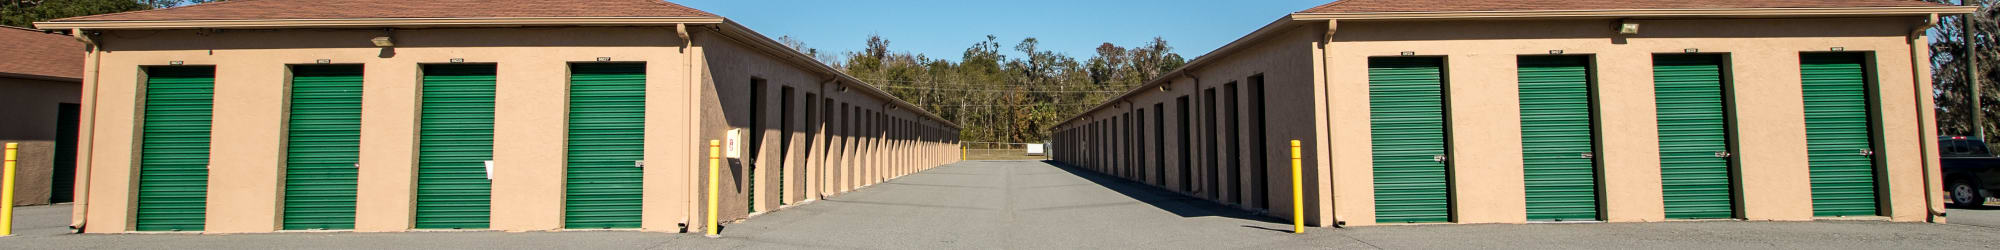 Self storage units for rent in Ocala, FL